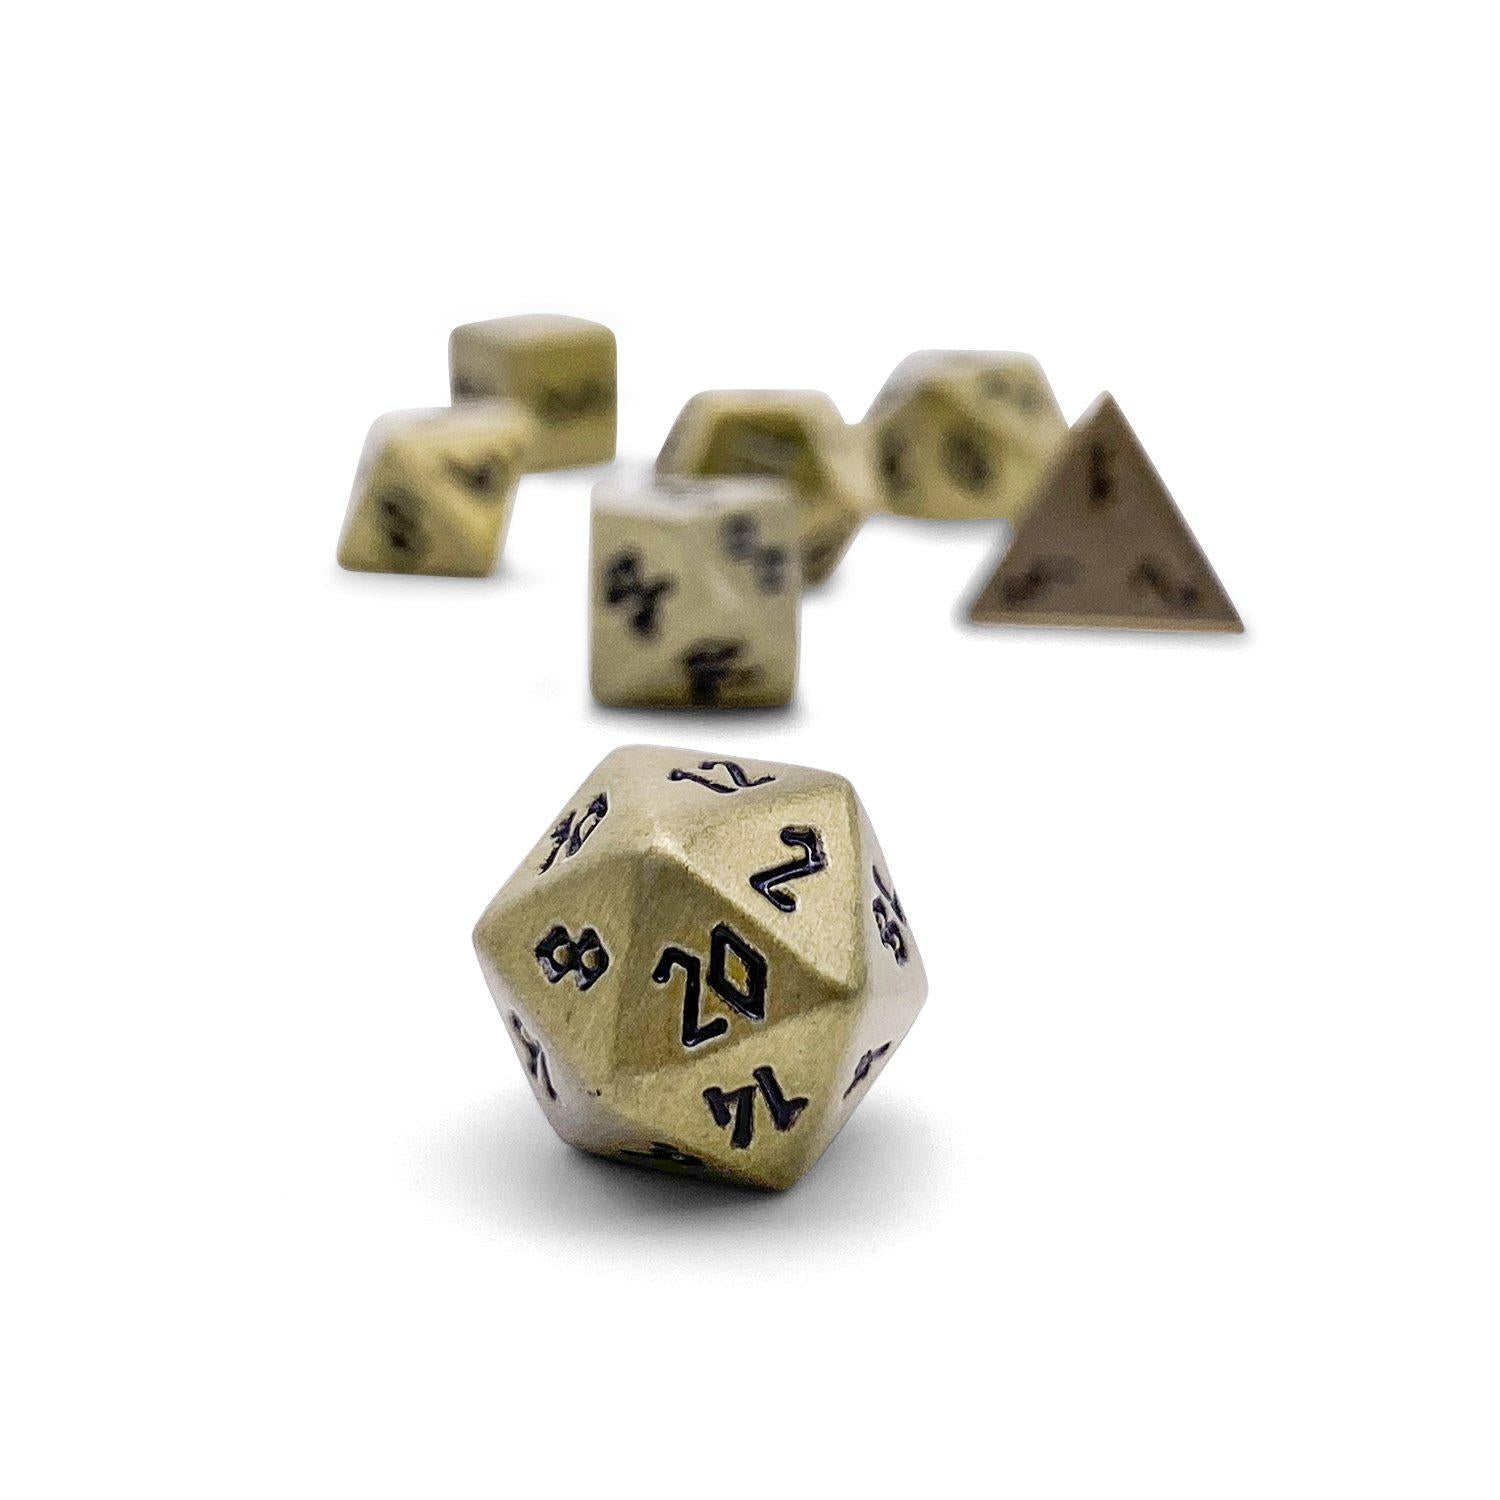 Bronze Dragon Scale Pebble ™ Dice - 10mm Alloy Mini Polyhedral Dice Set